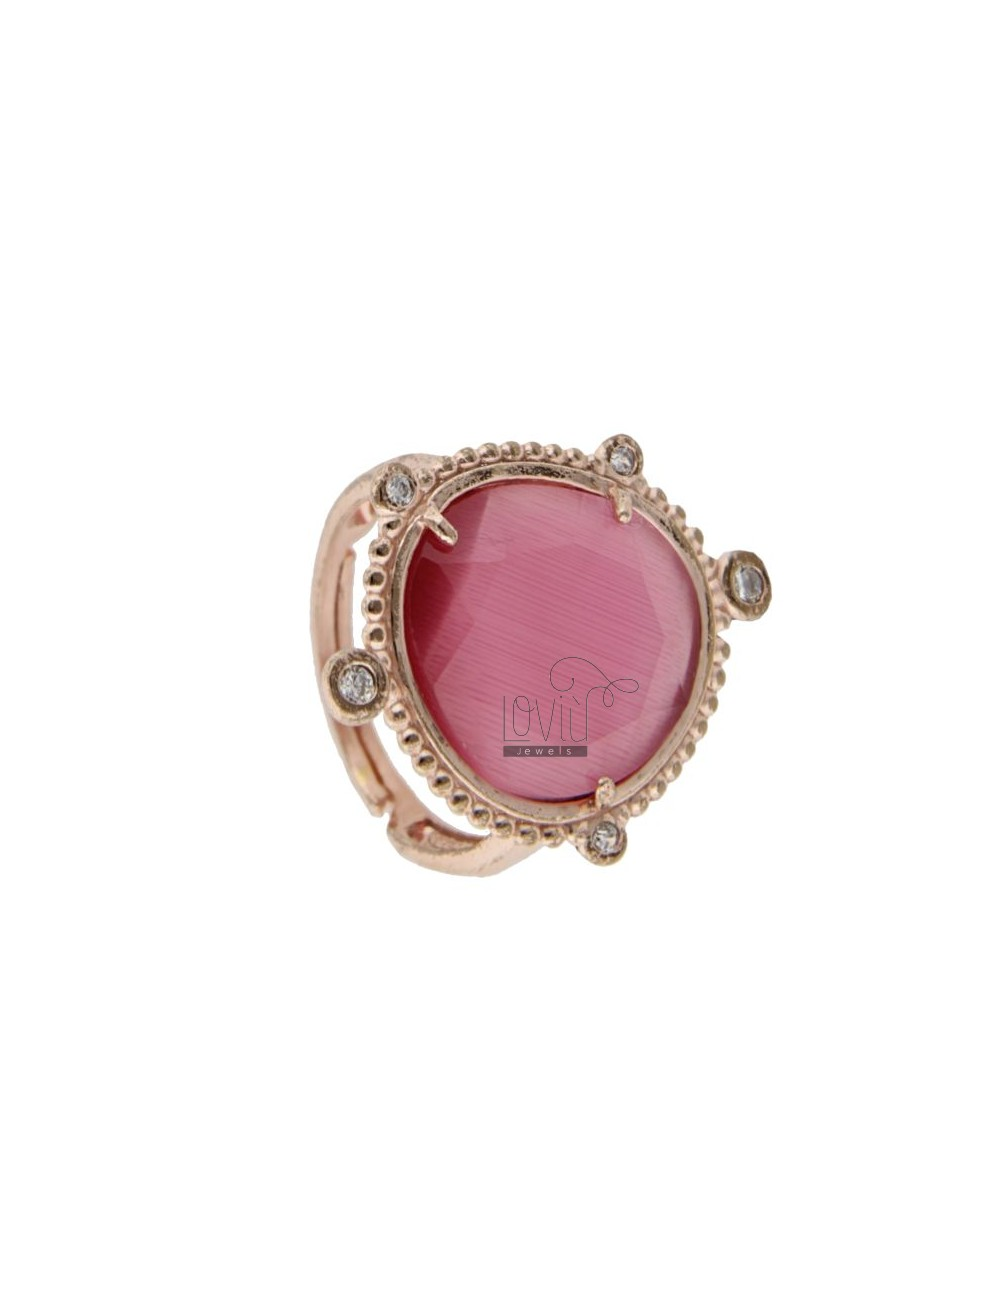 RING WITH HYDROTHERMAL STONE SASSO GREAT COLOR FUCHSIA 16 AND ZIRCONIA IN AG ROSATO TIT 925 ‰ ADJUSTABLE SIZE